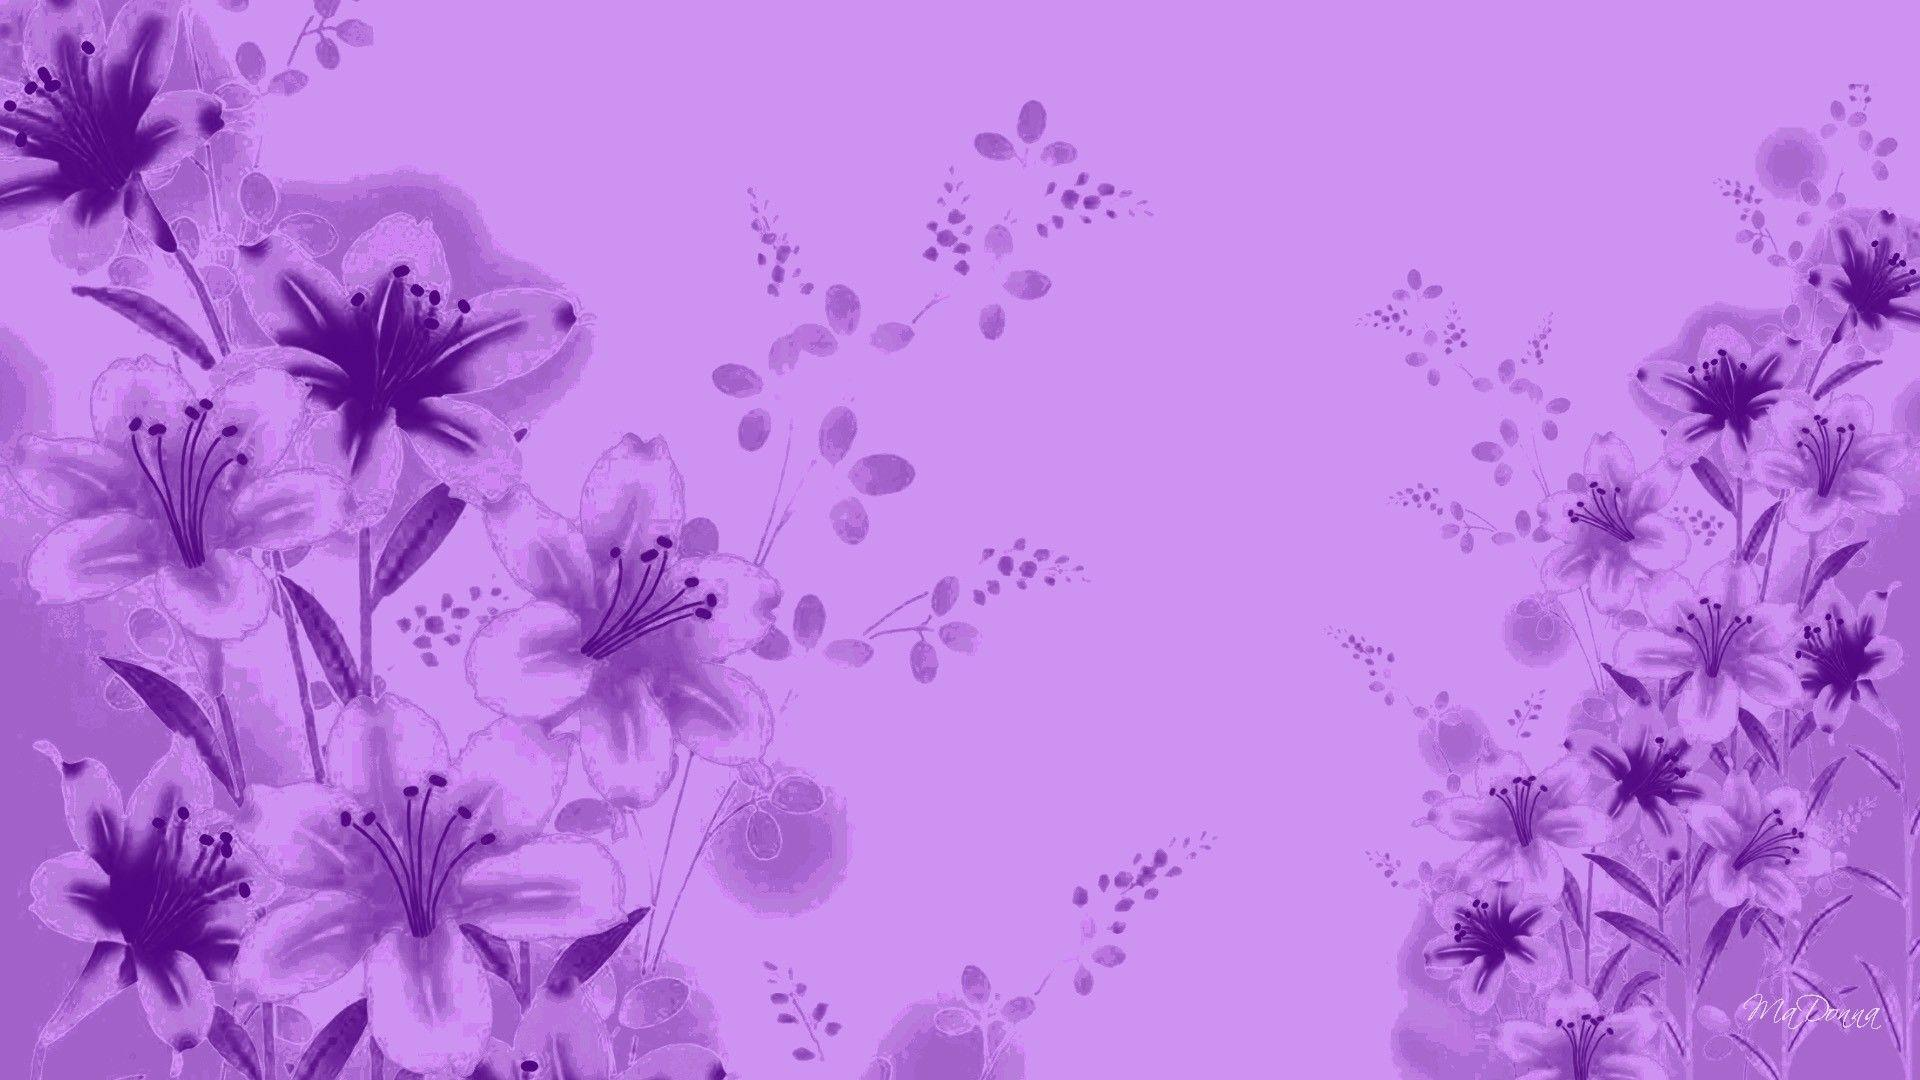 Lavender Color Wallpapers - Wallpaper Cave